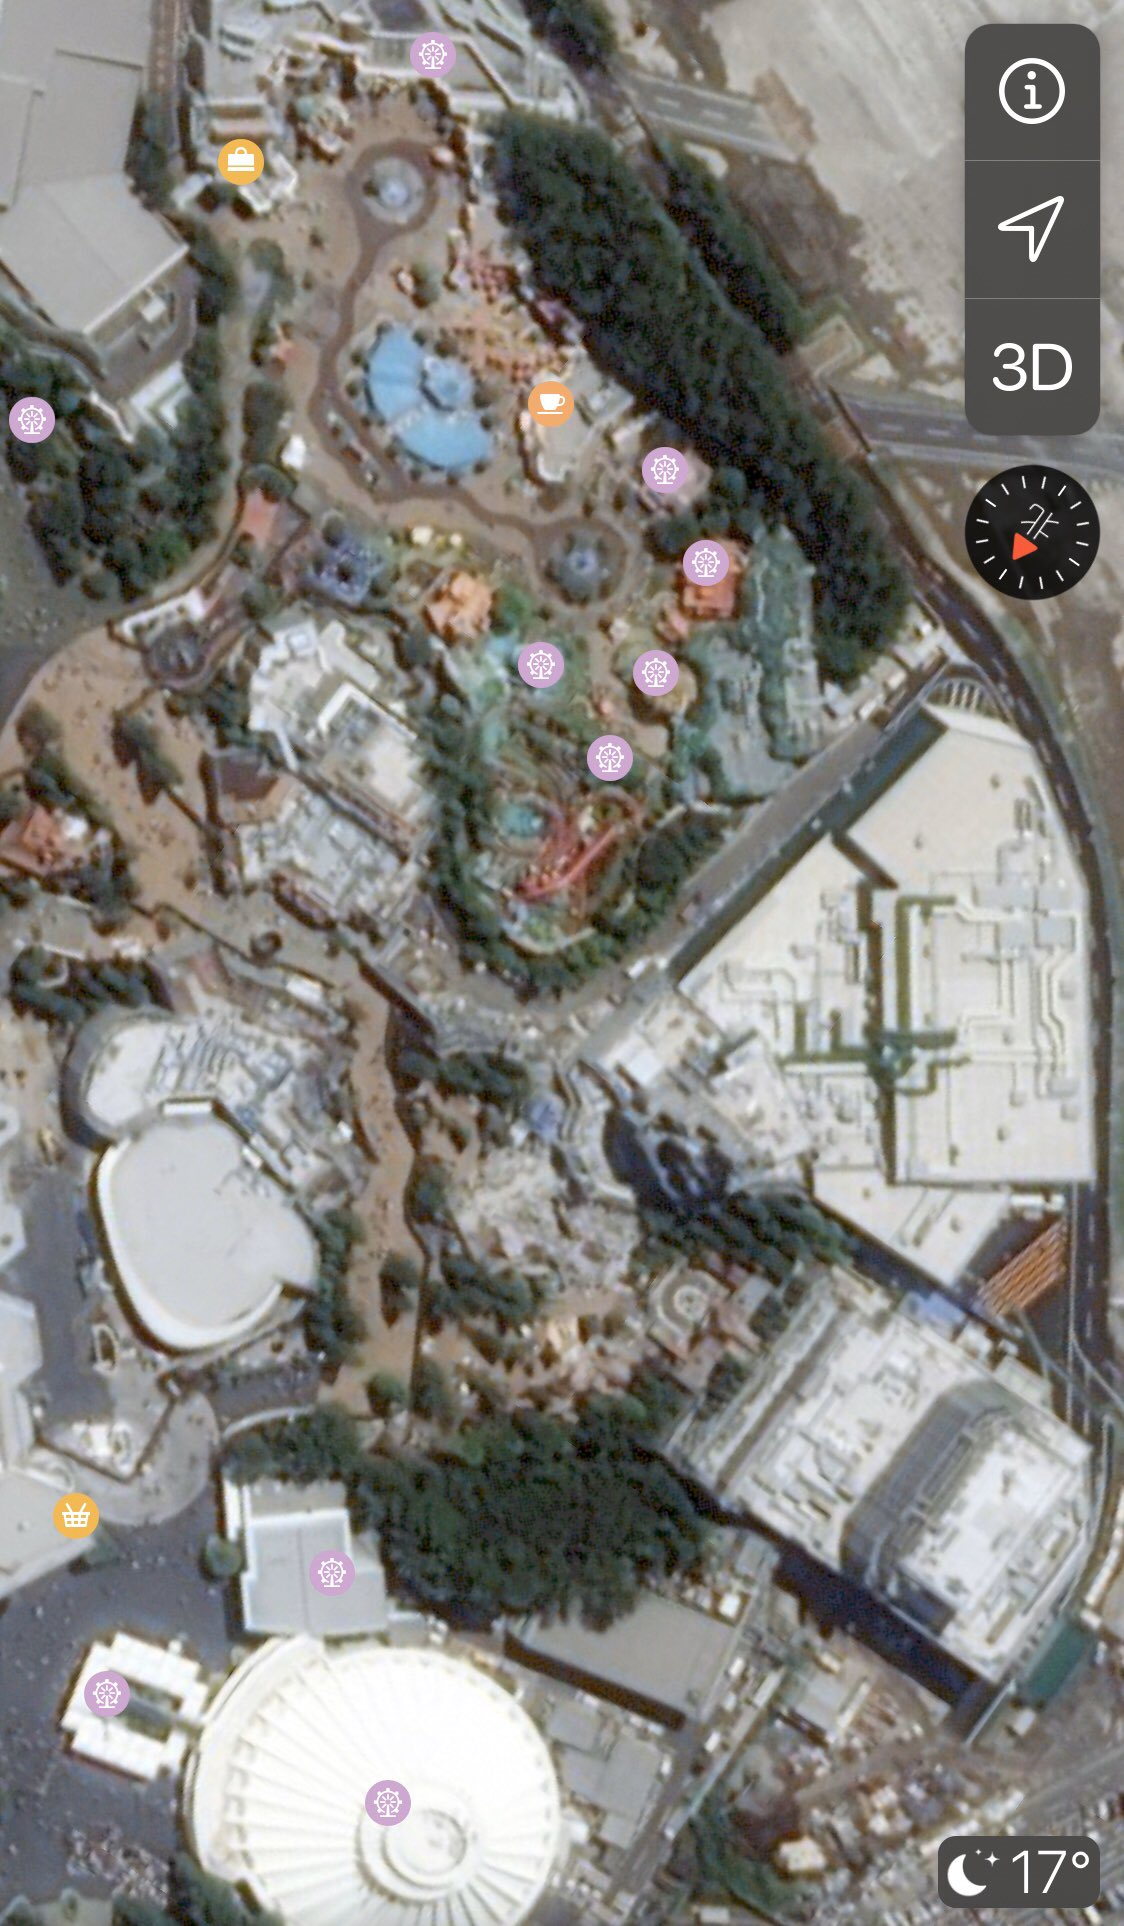 [Tokyo Disneyland] Nouvelles attractions à Toontown, Fantasyland et Tomorrowland (15 avril 2020)  - Page 9 EUwozrnUUAAw1Qe?format=jpg&name=large